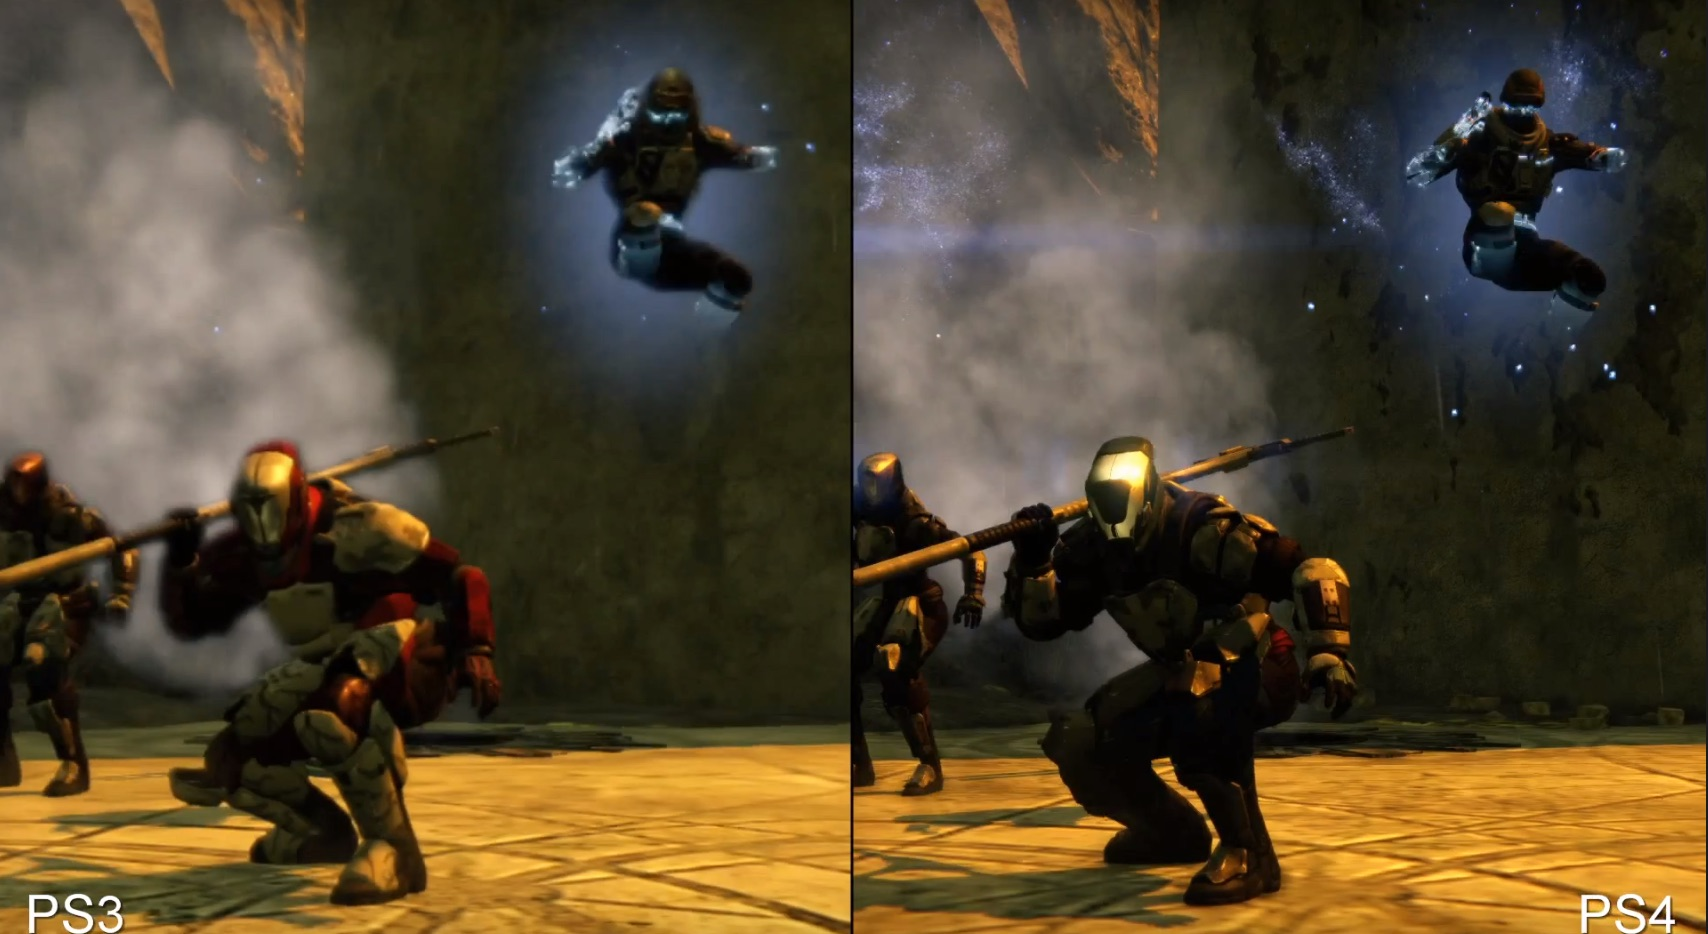 Destiny Dance Gif: Destiny Beta PS3 Vs PS4 Comparison